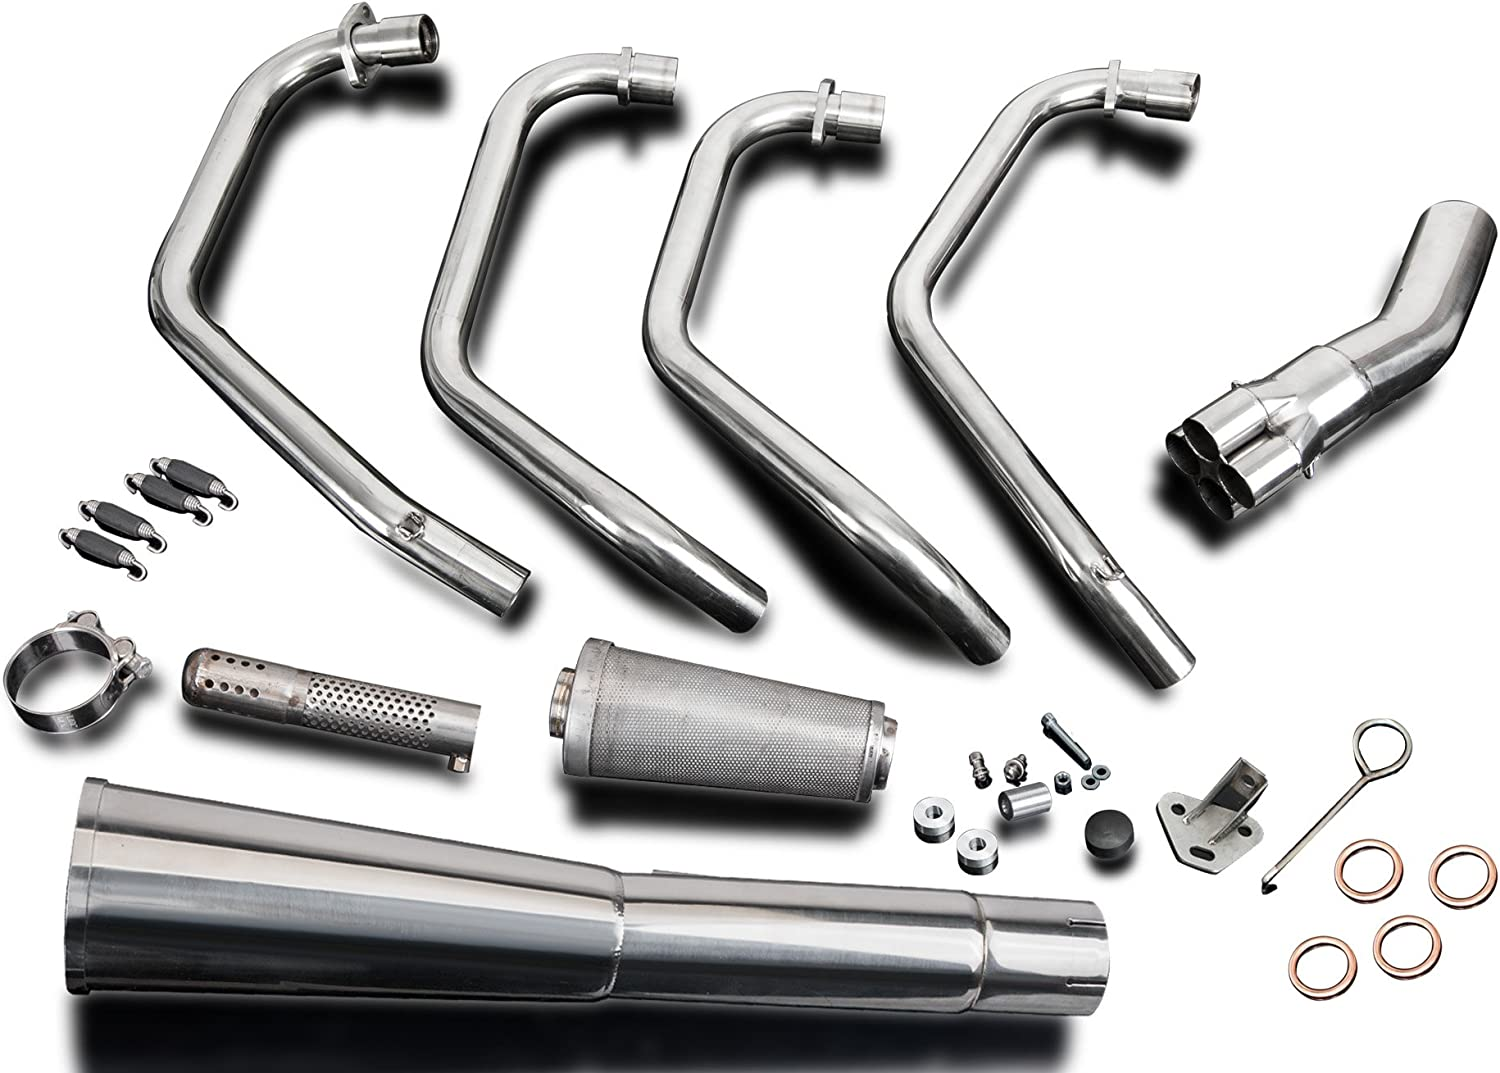 with Classic Megaphone Muffler and Stainless Steel 4-1 Headers 1977-1978 Delkevic Aftermarket Full System compatible with Honda CB750K SOHC